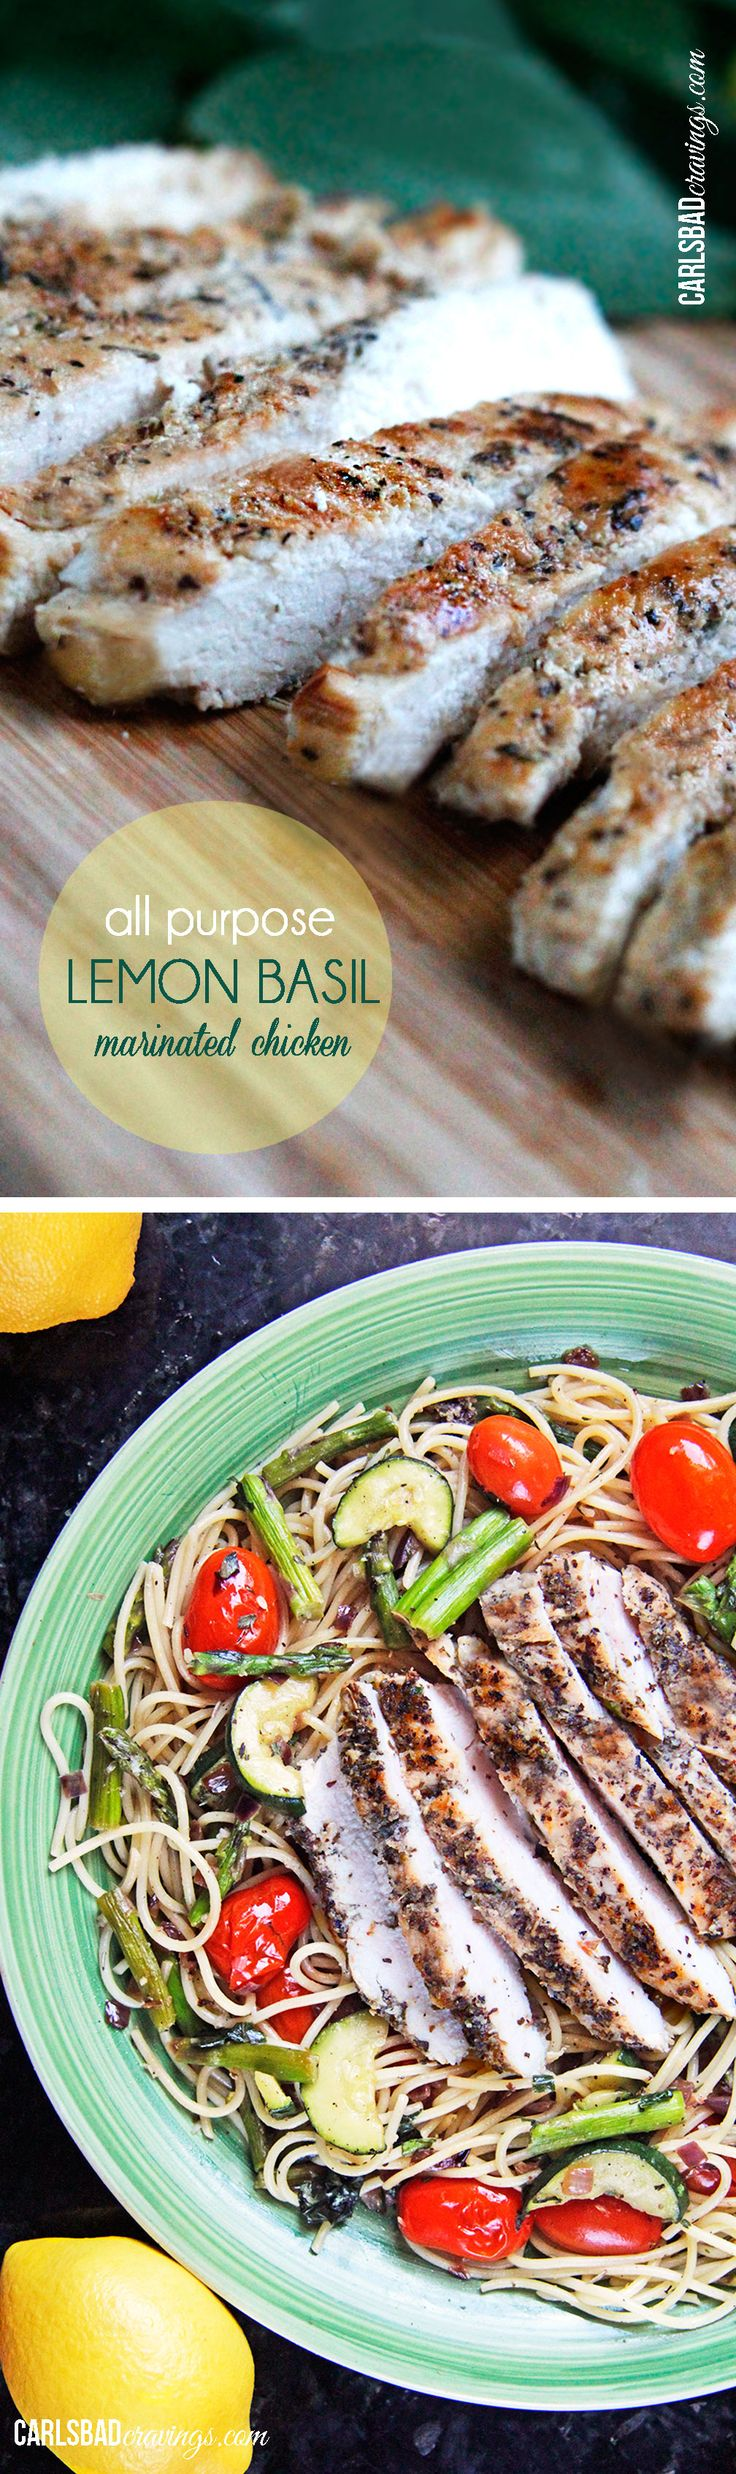 Quick and easy lemon basil chicken perfect to toss in pasta, salad, wraps, pitas, etc..